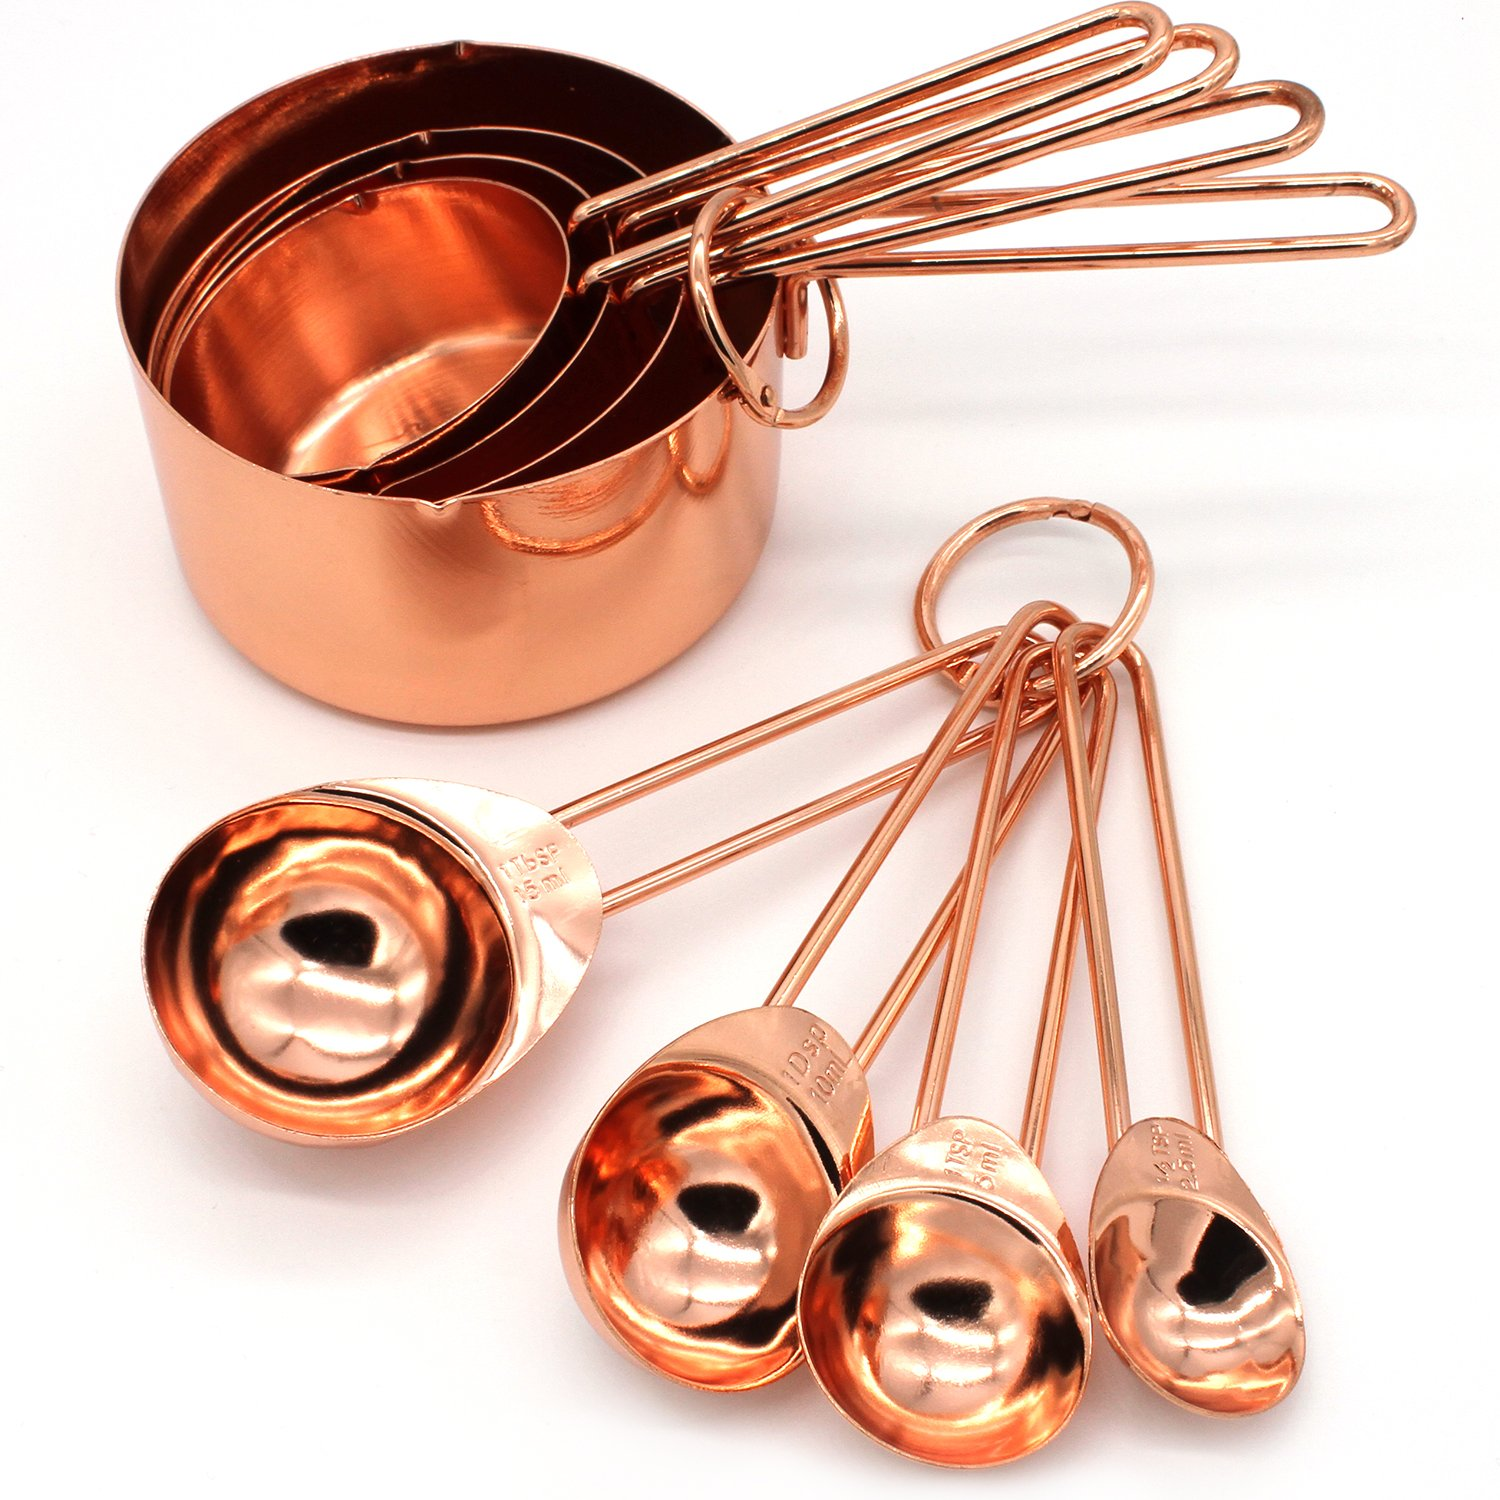 GOOD FOR YOU Copper Stainless Steel Measuring Cups and Spoons set of 8 Engraved Measurements, Pouring Spouts & Mirror Polished for Baking and Cooking - 60ml 80ml 125ml 250 ml Ideal For All Ingredients + Recipe e-book included White Kingfisher Ltd